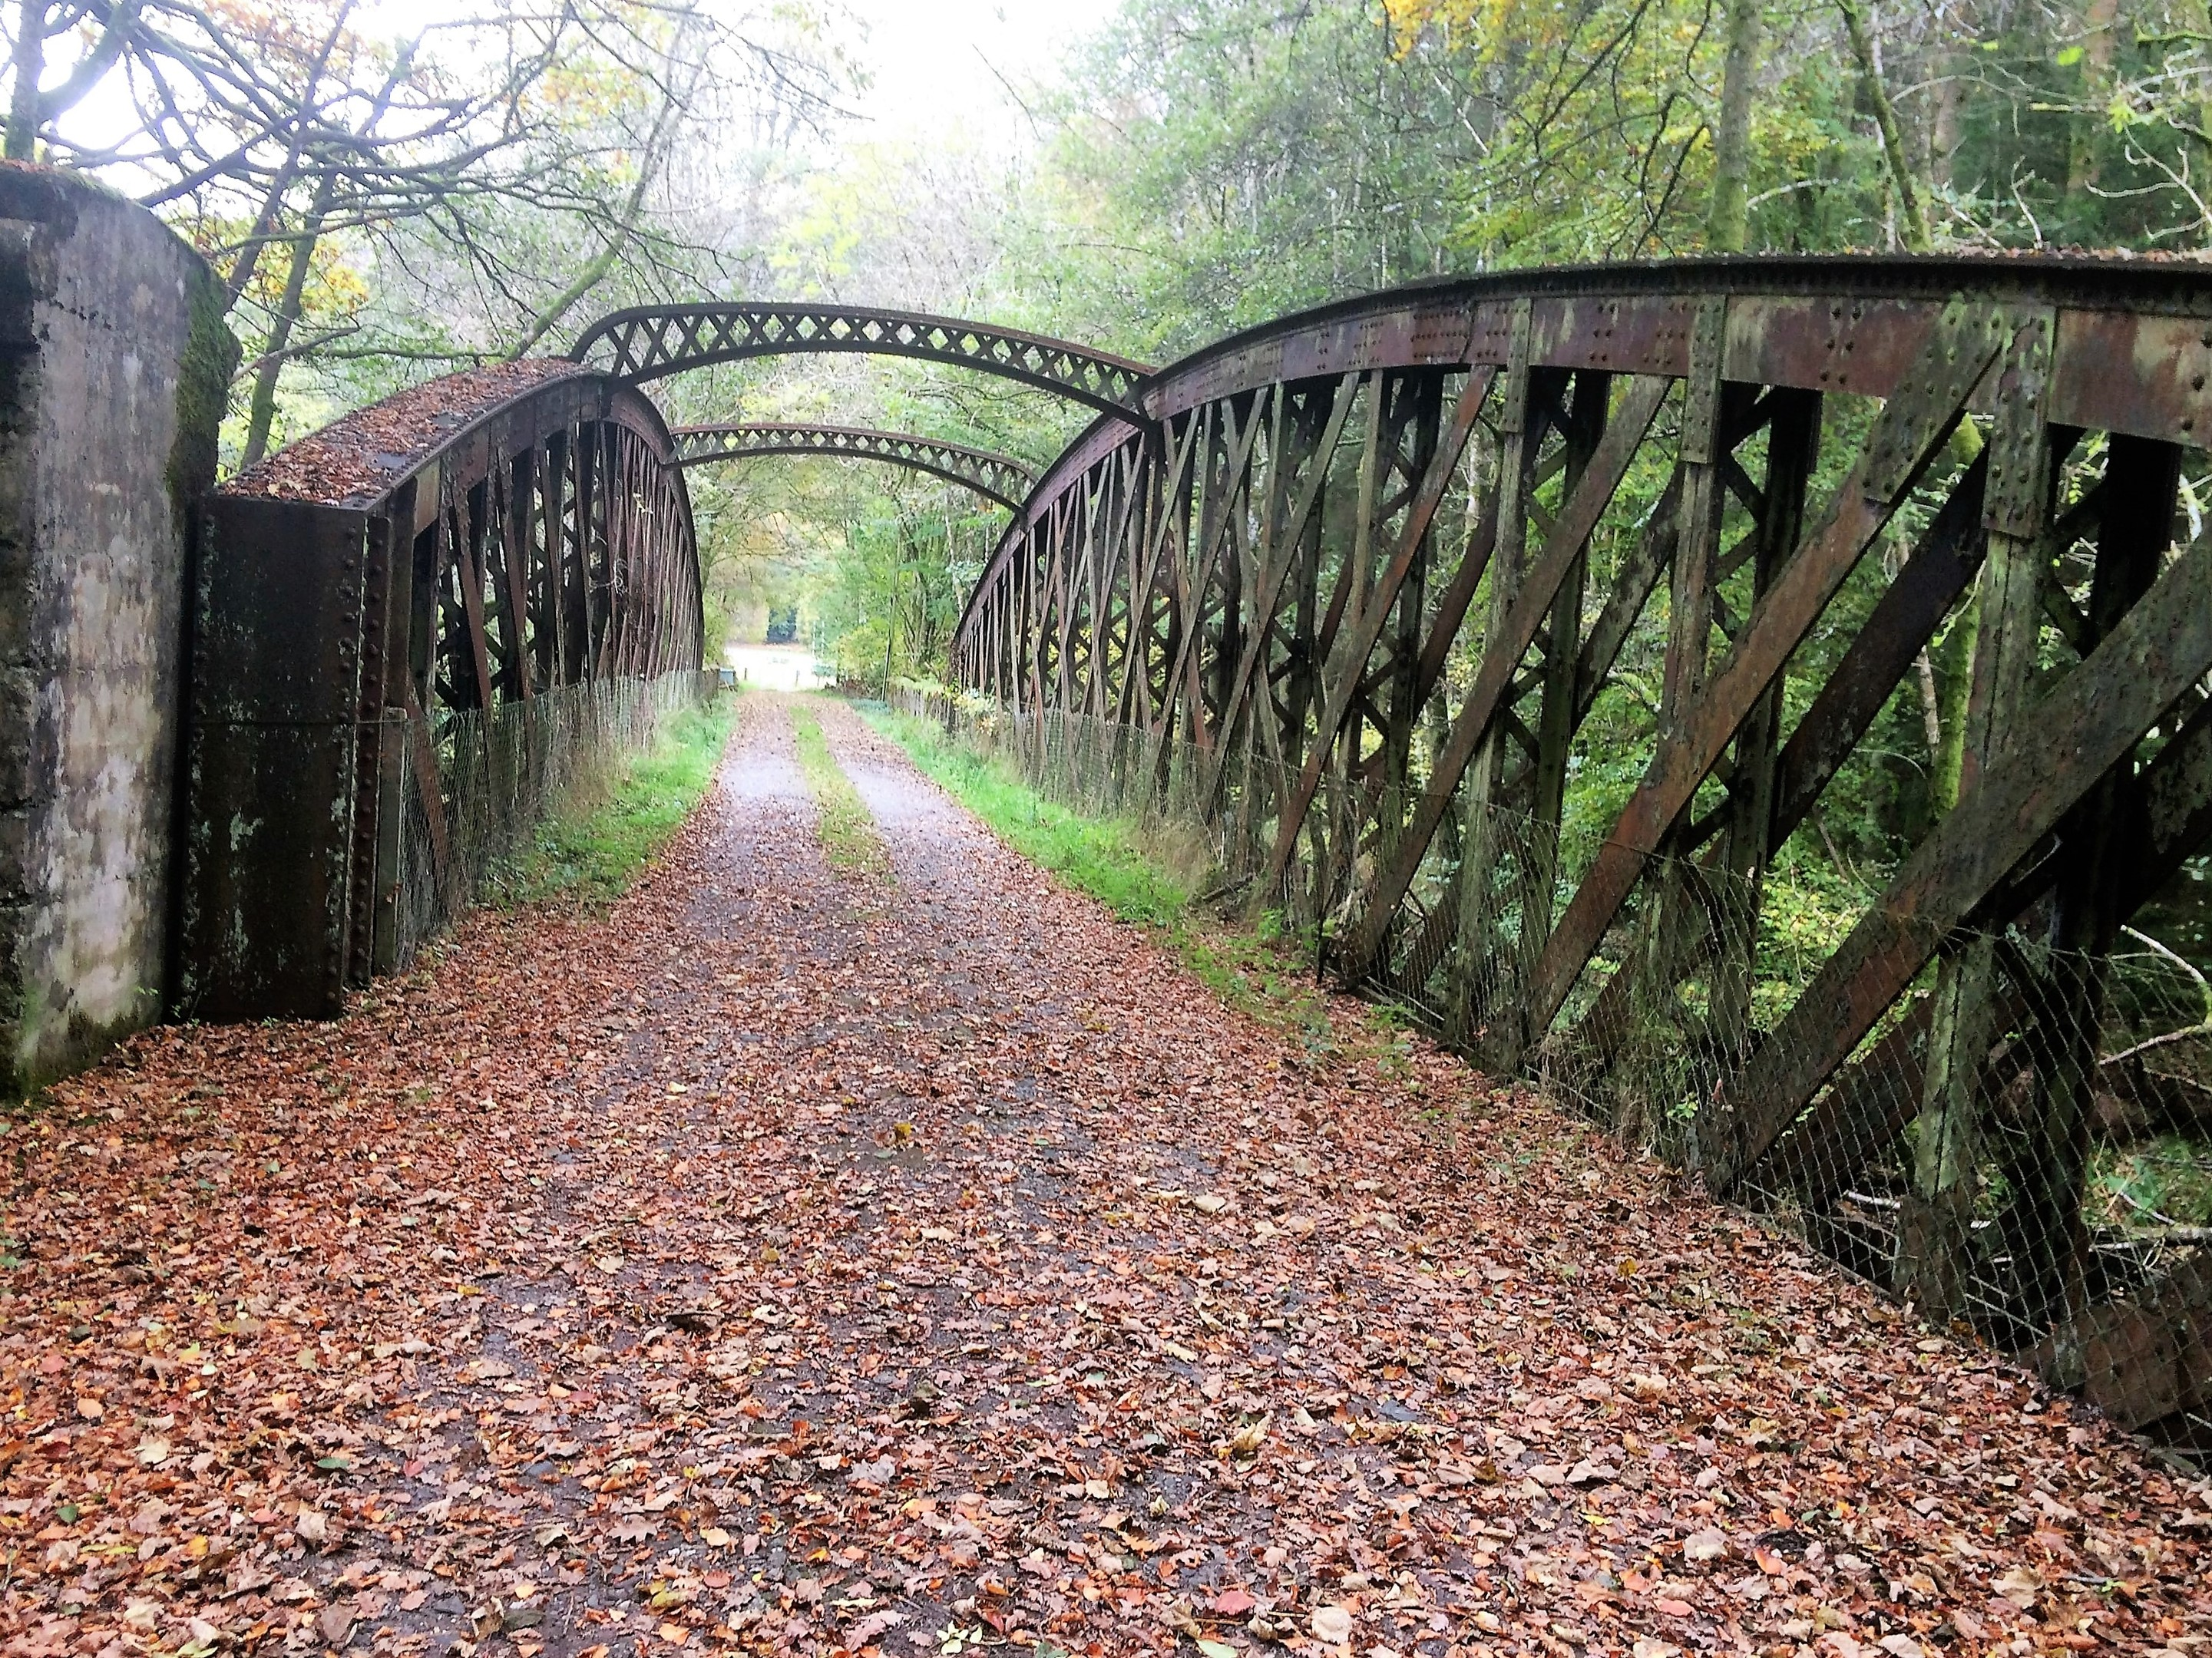 The Tynreoch Viaduct is now part of a walking route along Strathearn's old railway lines.